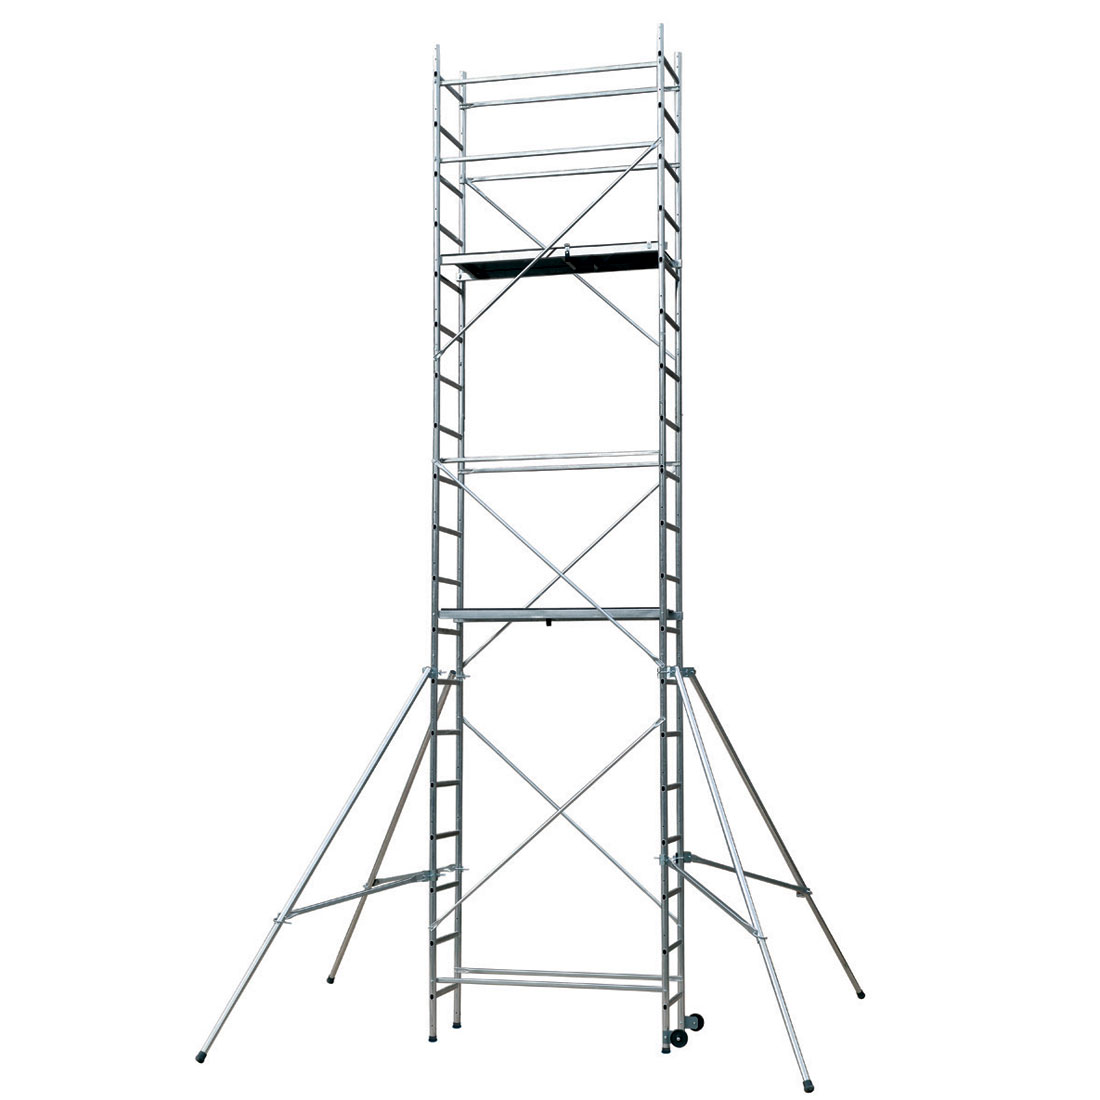 1100x1100 Sten Diy Scaffold Tower 6.7mtr Working Height To Nf E85 200